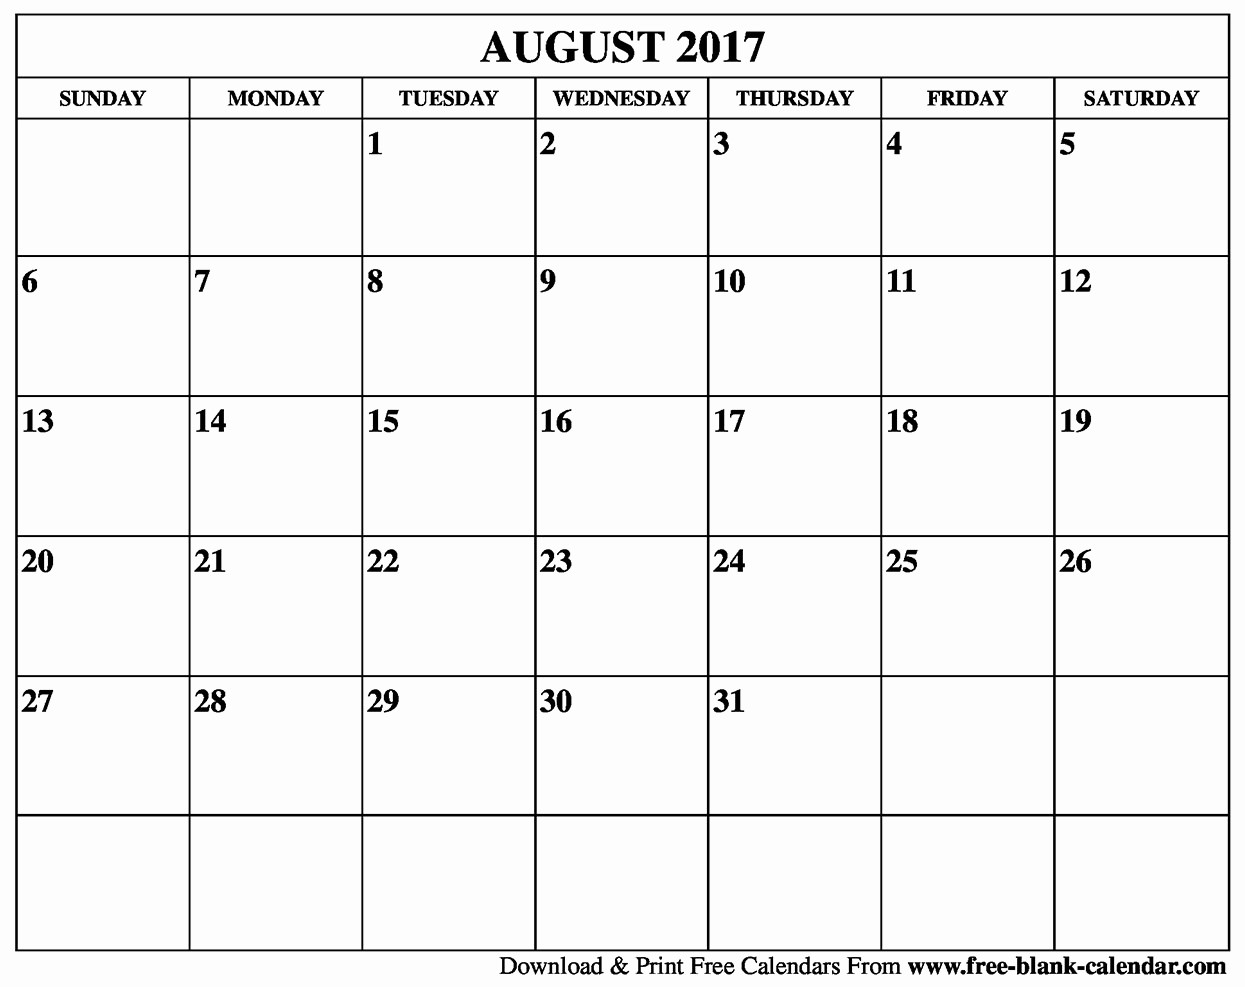 Free Blank Printable Calendar 2017 Best Of Blank August 2017 Calendar Printable